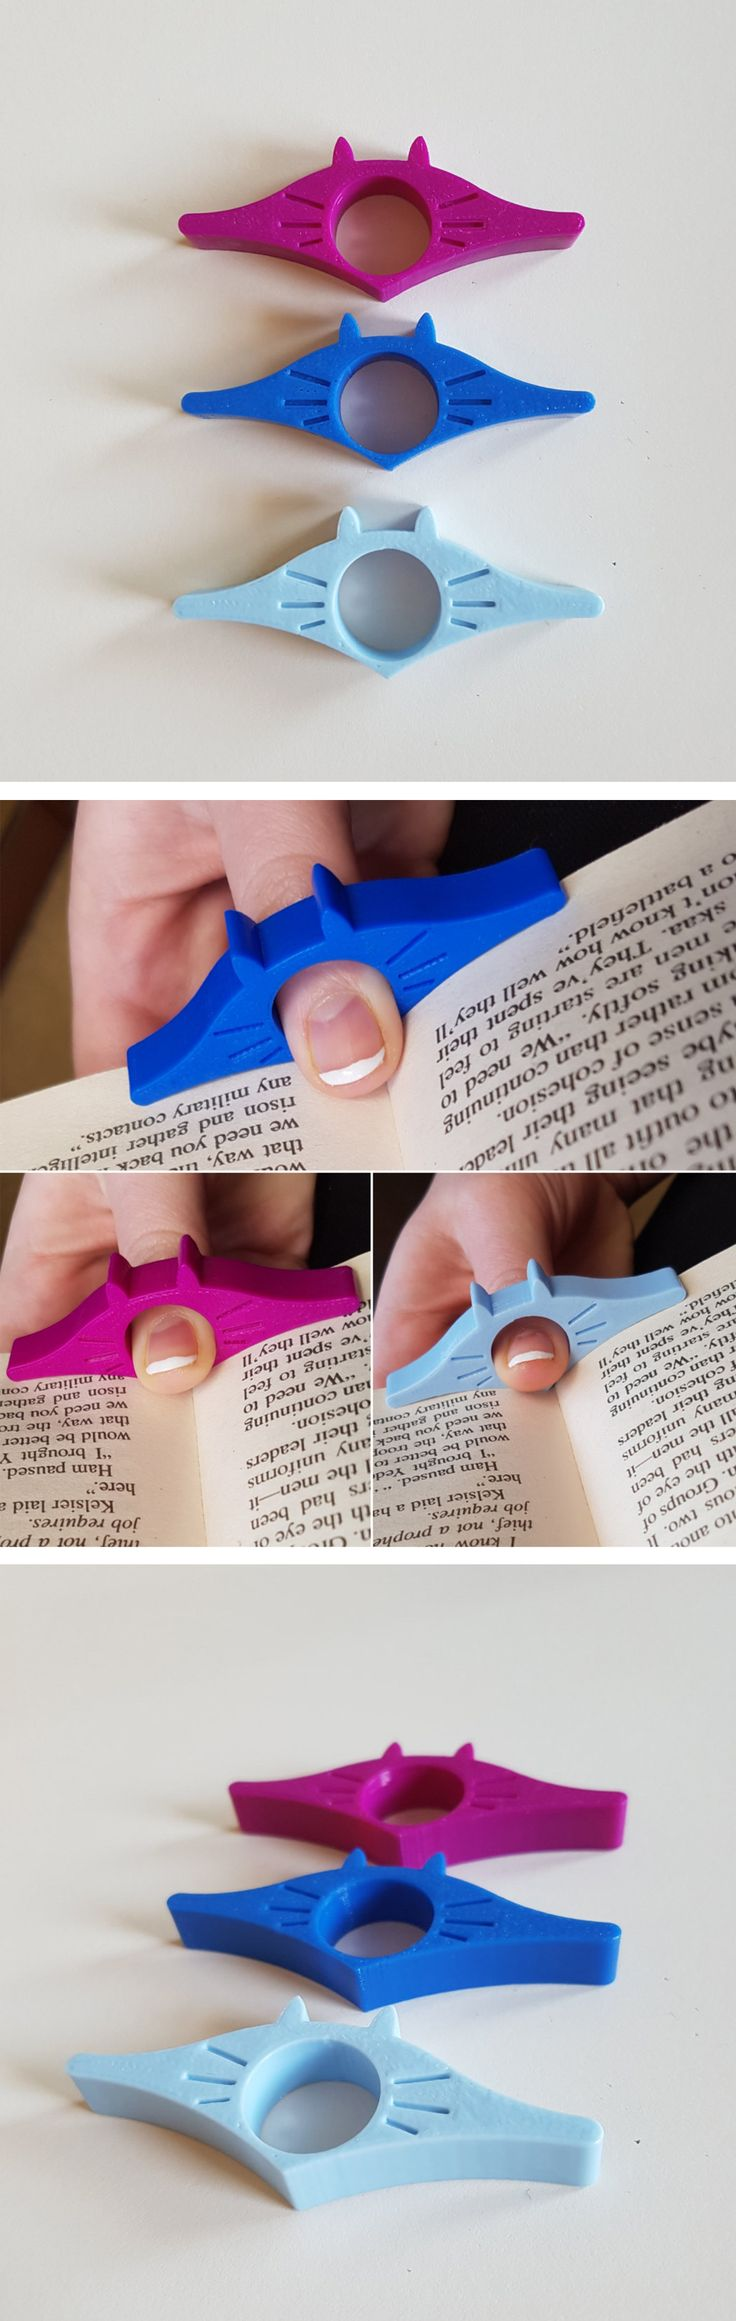 3D Printed Cat Page Holder   Gifts for cat lovers, Gifts for book lovers